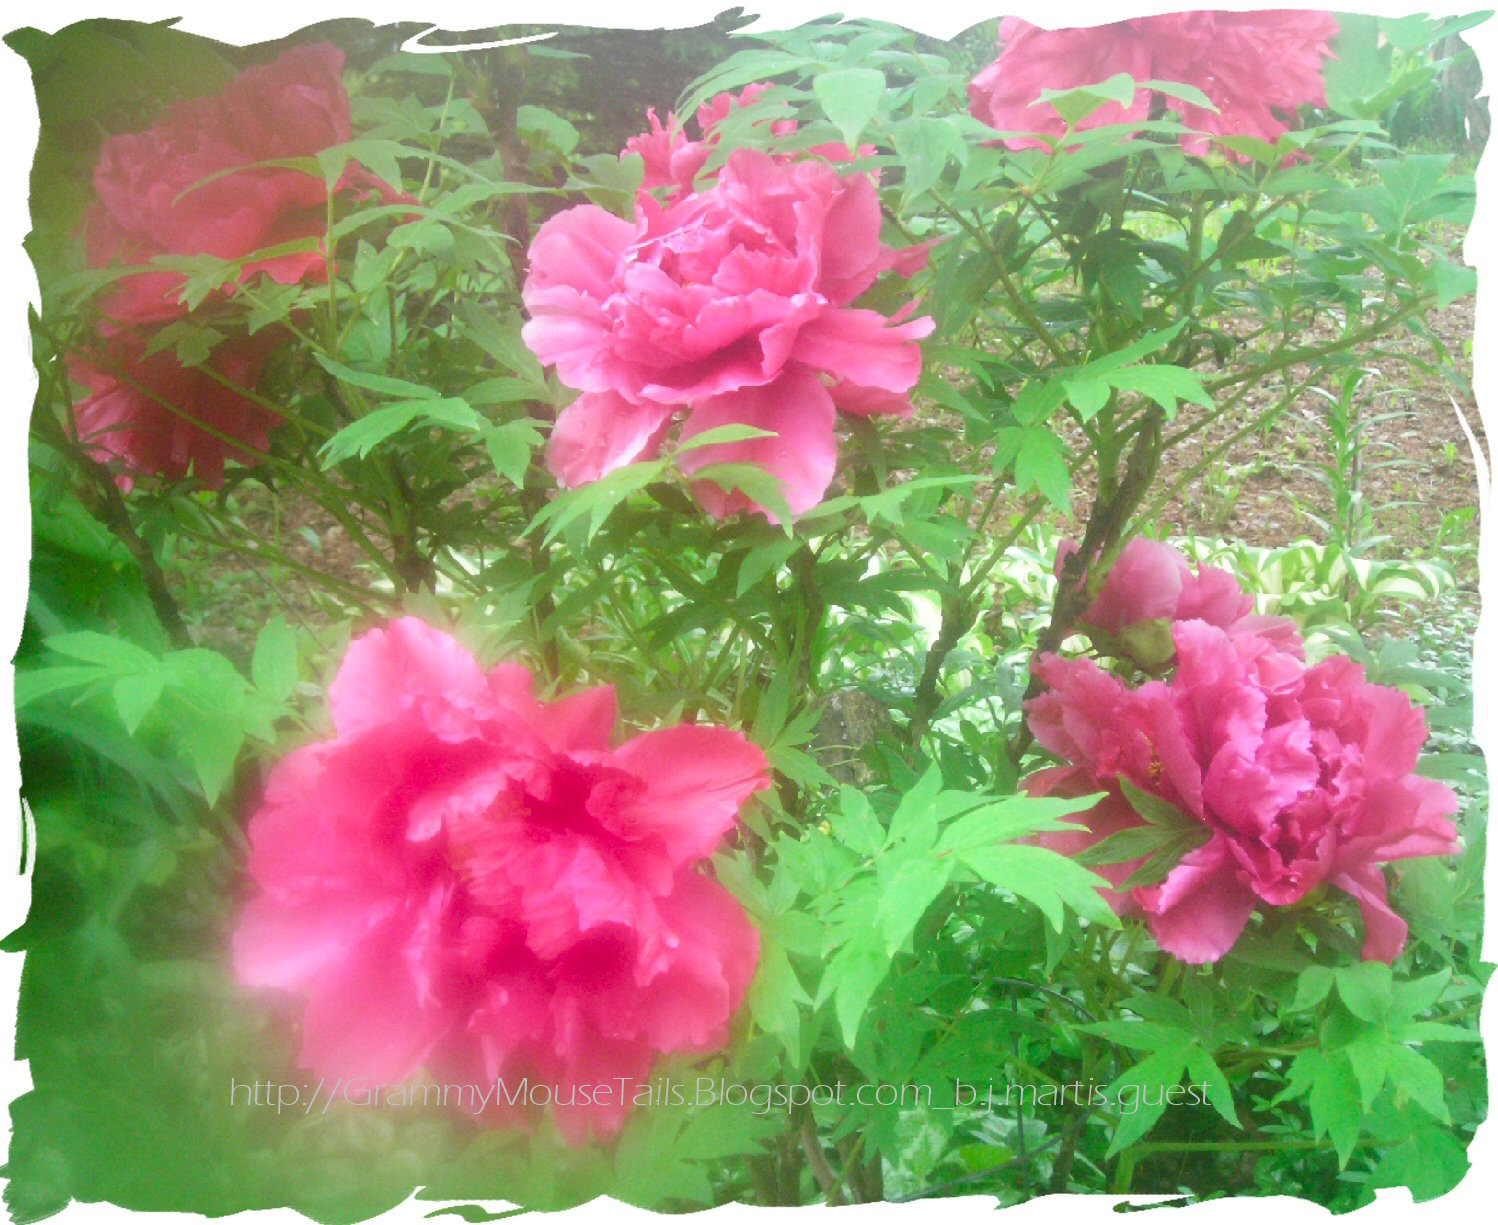 pink peony tree in early evening mist photo image